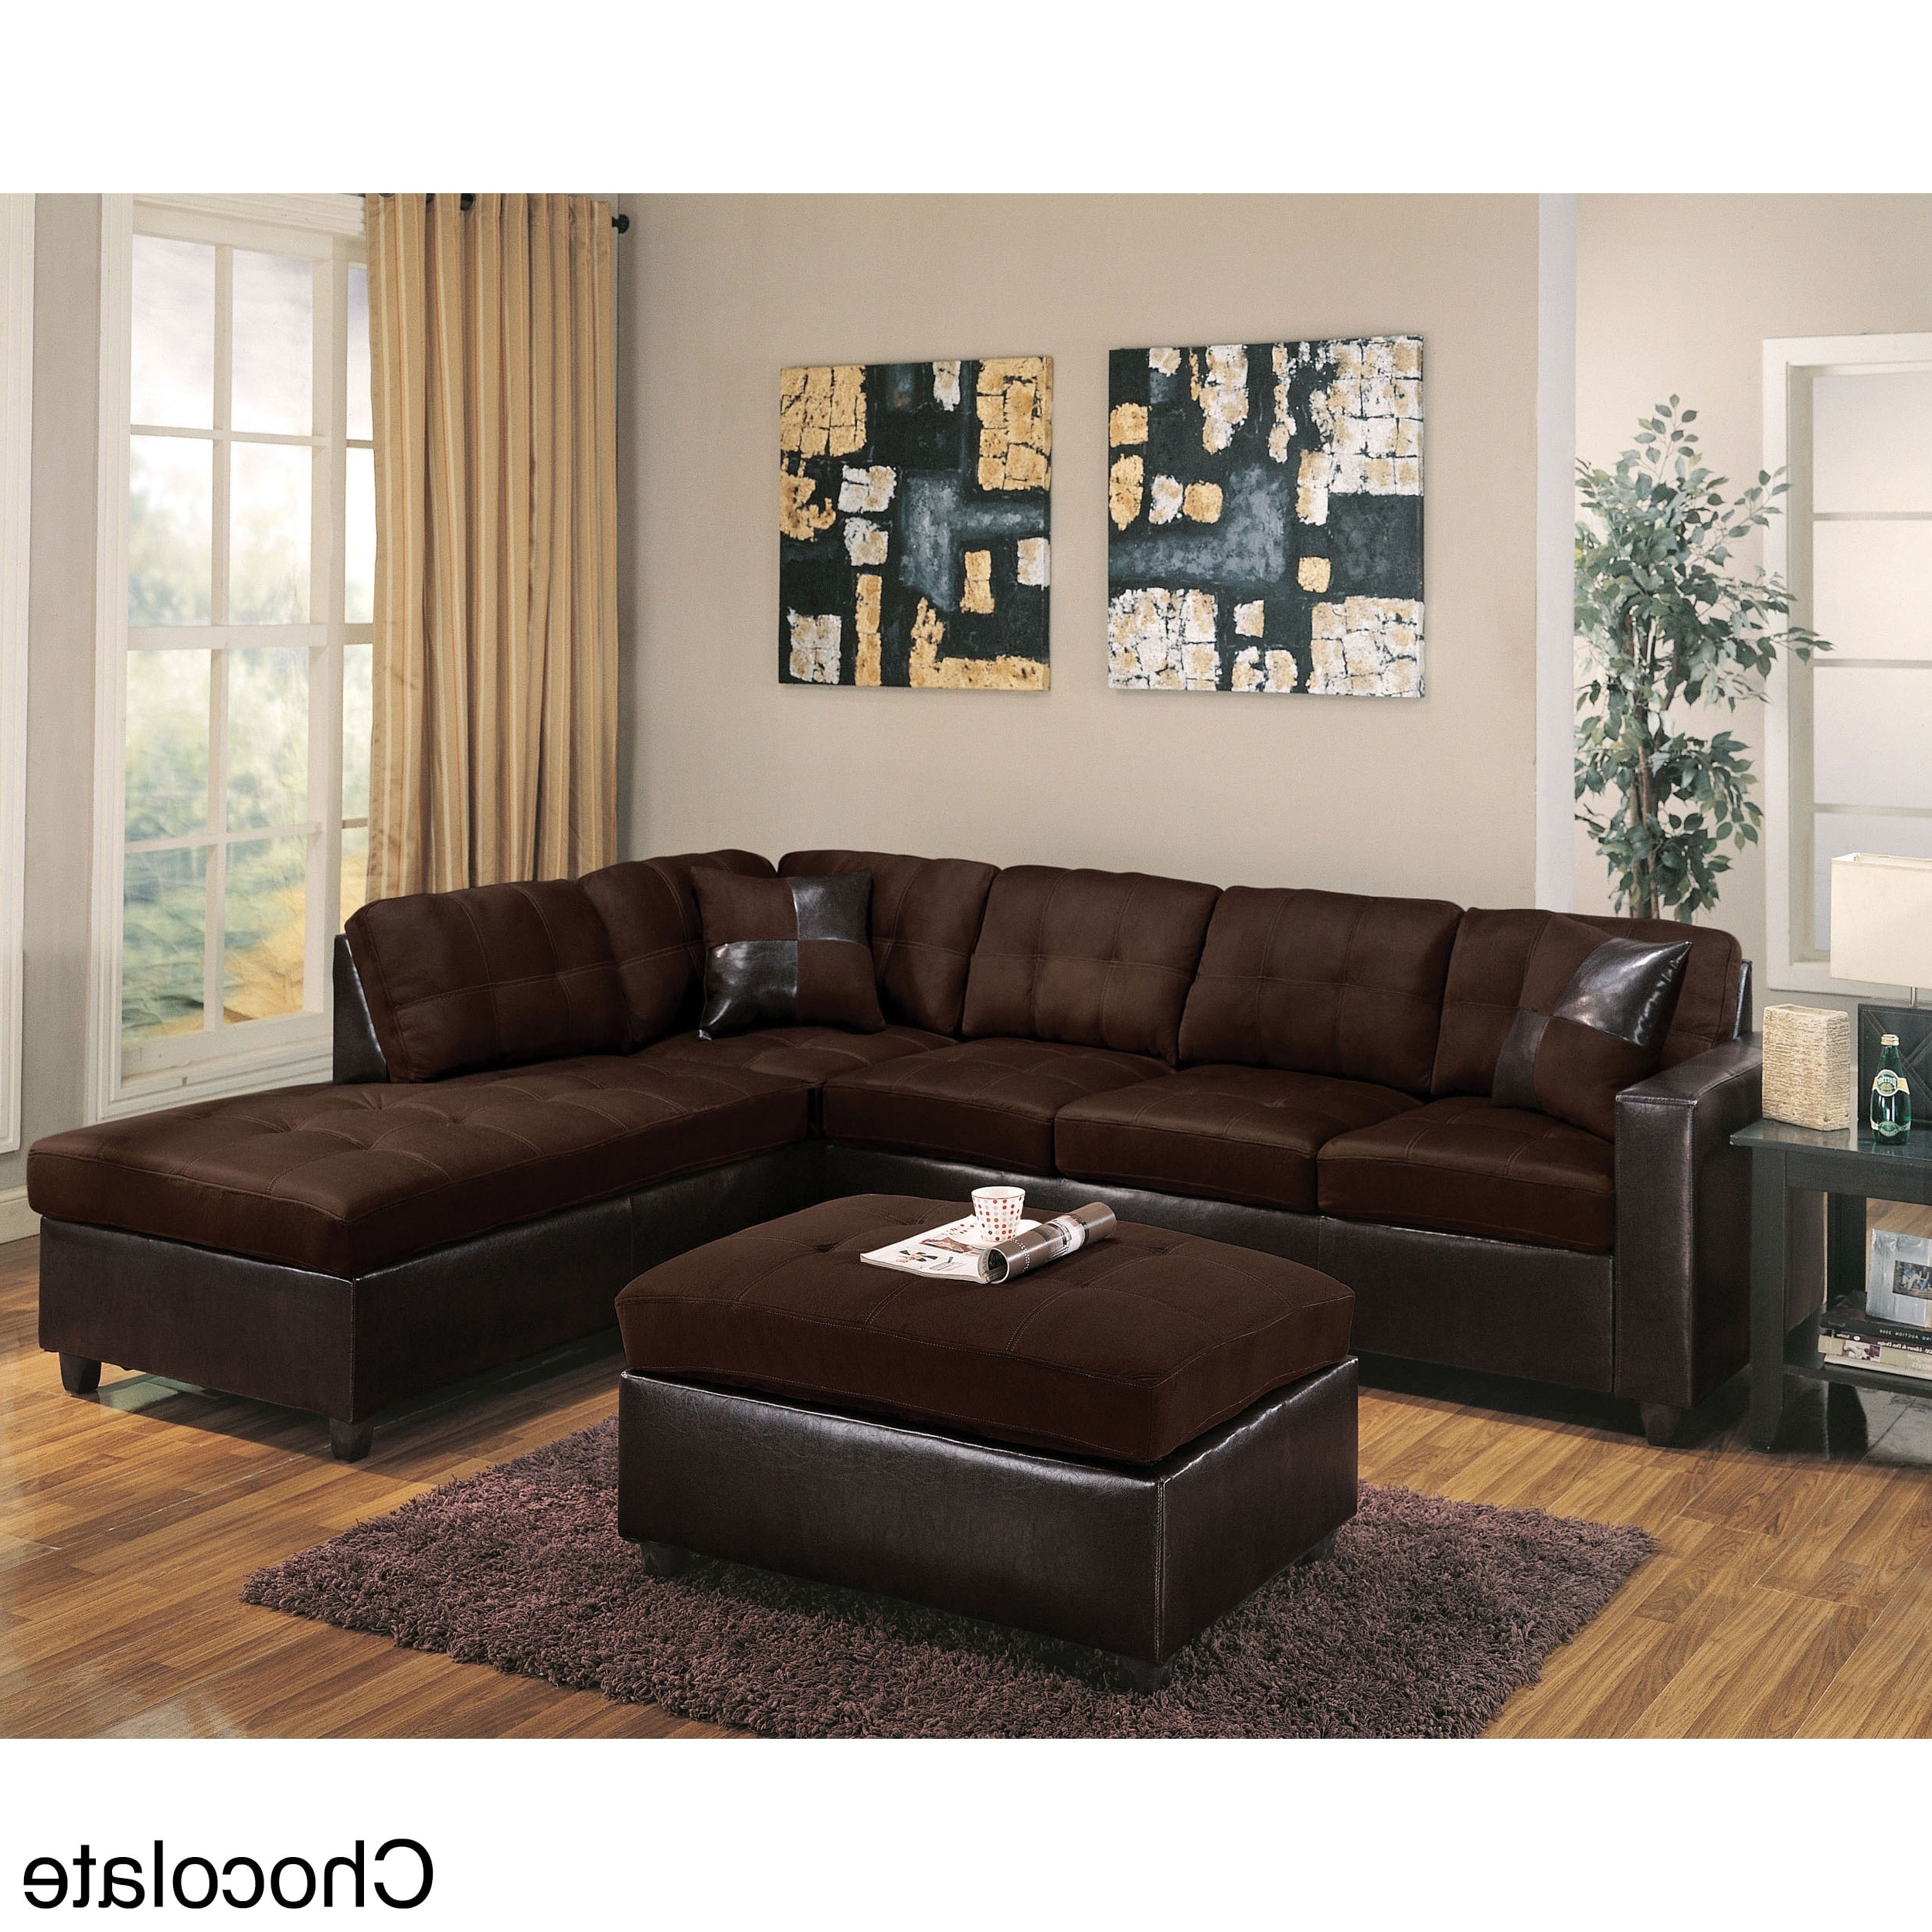 Famous Chocolate Sectional Sofas Within Milano Reversible Sectional Sofa In Chocolate Easy Rider And (View 15 of 15)